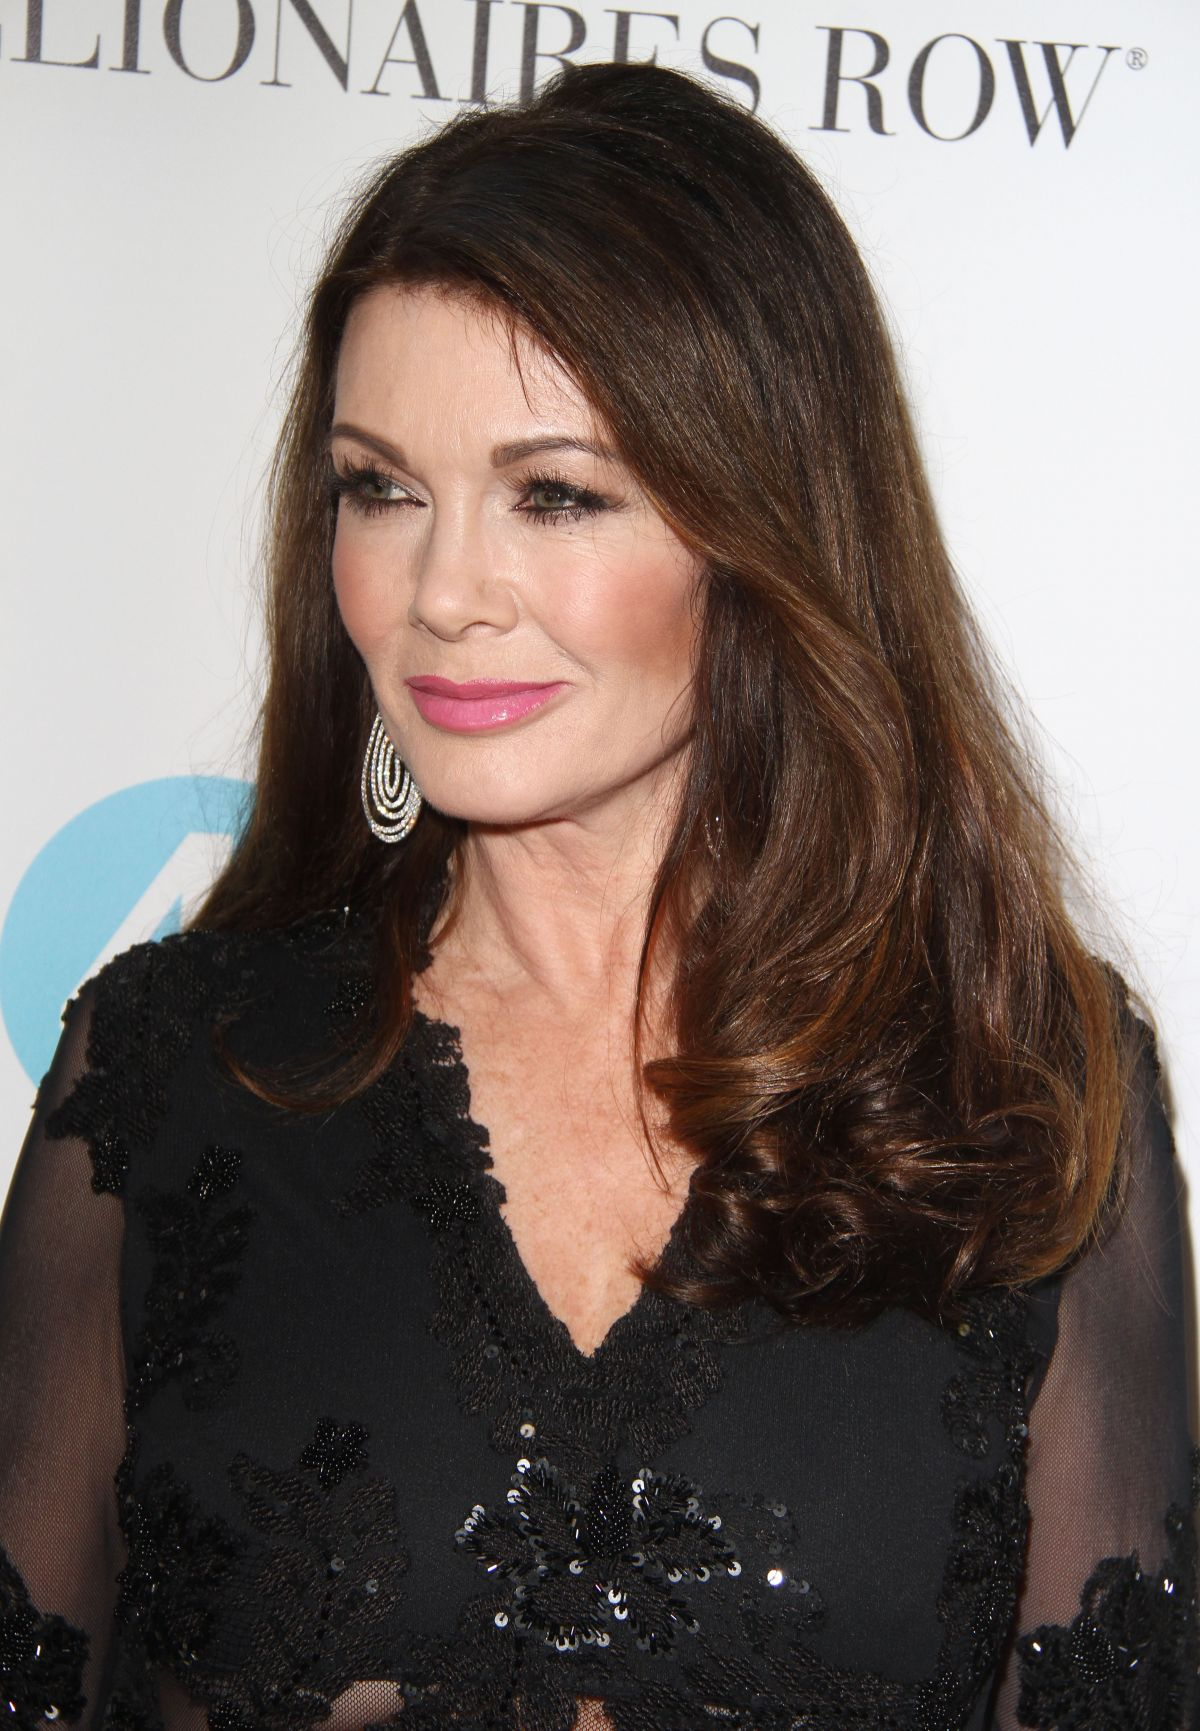 LISA VANDERPUMP at 4th Annual unite4:humanity Gala in Beverly Hills 04/07/2017